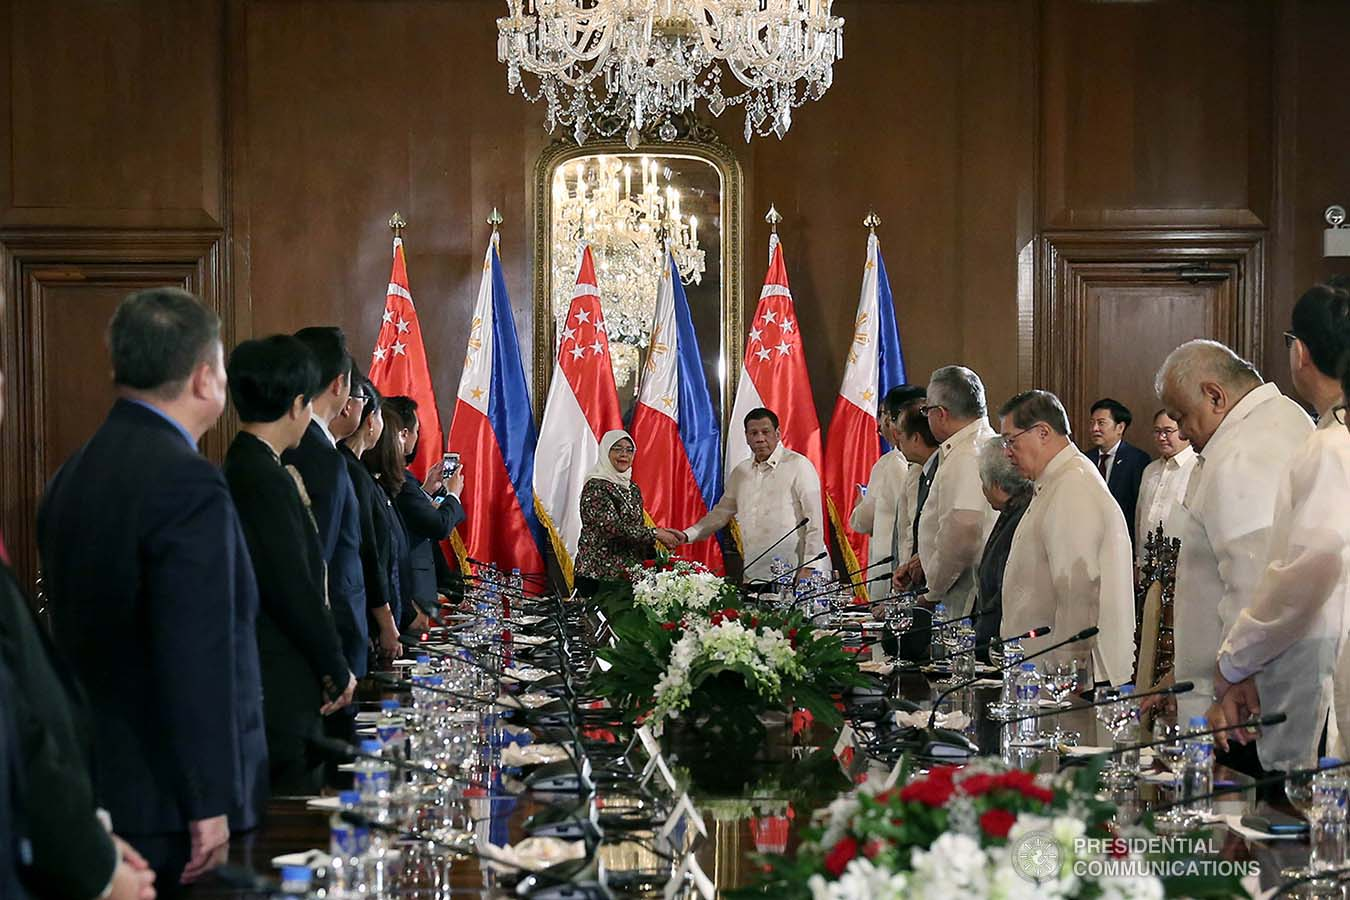 President Rodrigo Roa Duterte and Republic of Singapore President Halimah Yacob pose for posterity prior to the start of their expanded bilateral meeting at the Malacañan Palace during the latter's state visit to the Philippines on September 9, 2019. SIMEON CELI JR./PRESIDENTIAL PHOTO